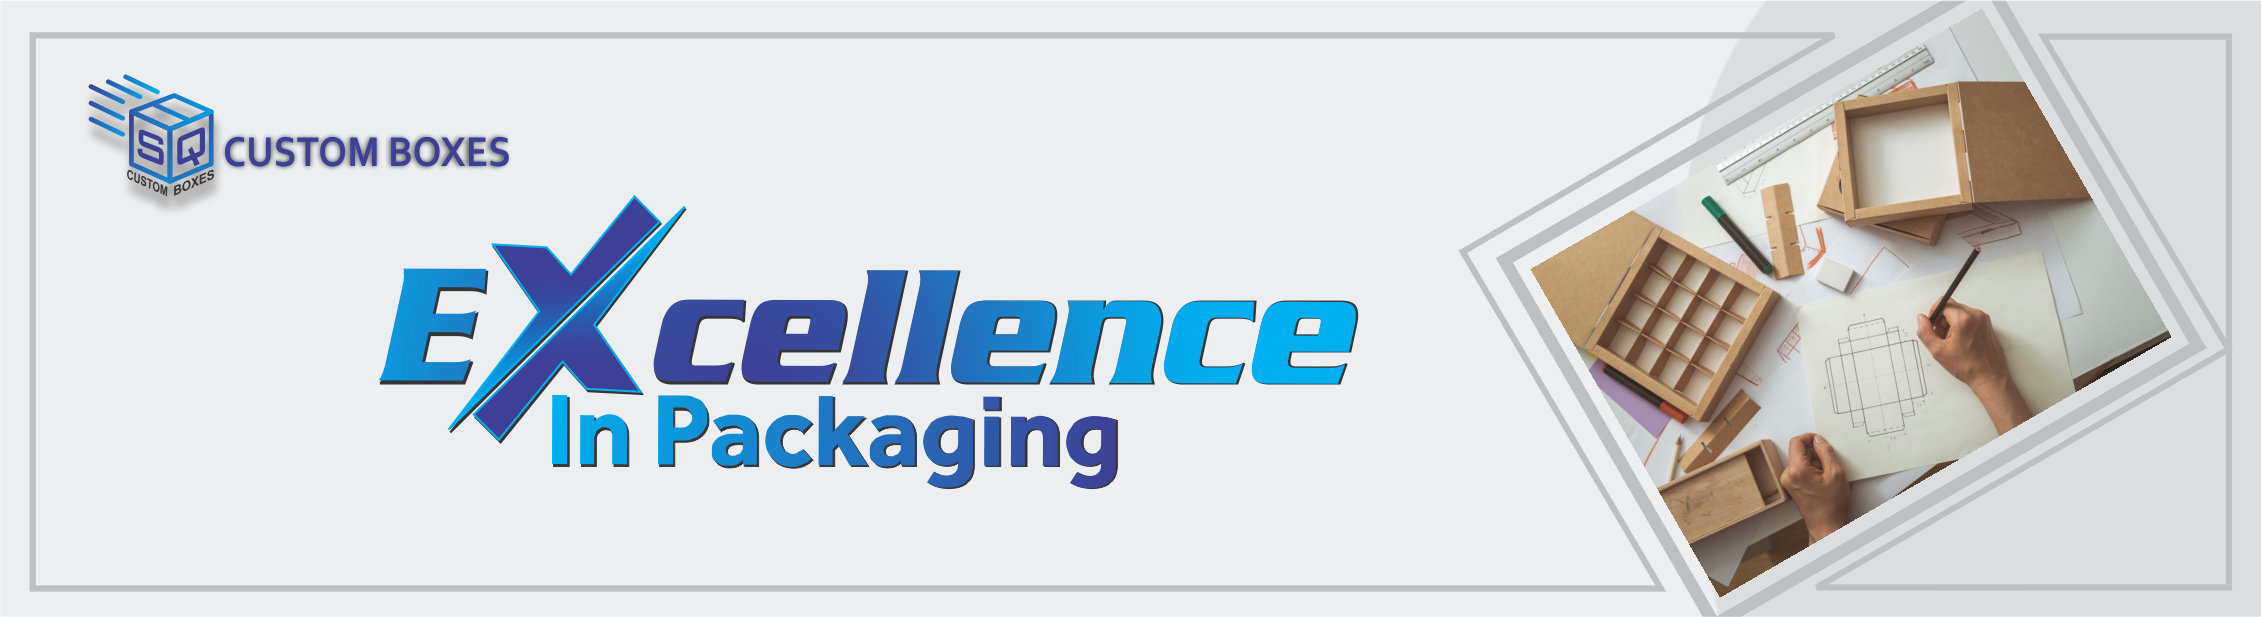 Excellence banner thumbnail